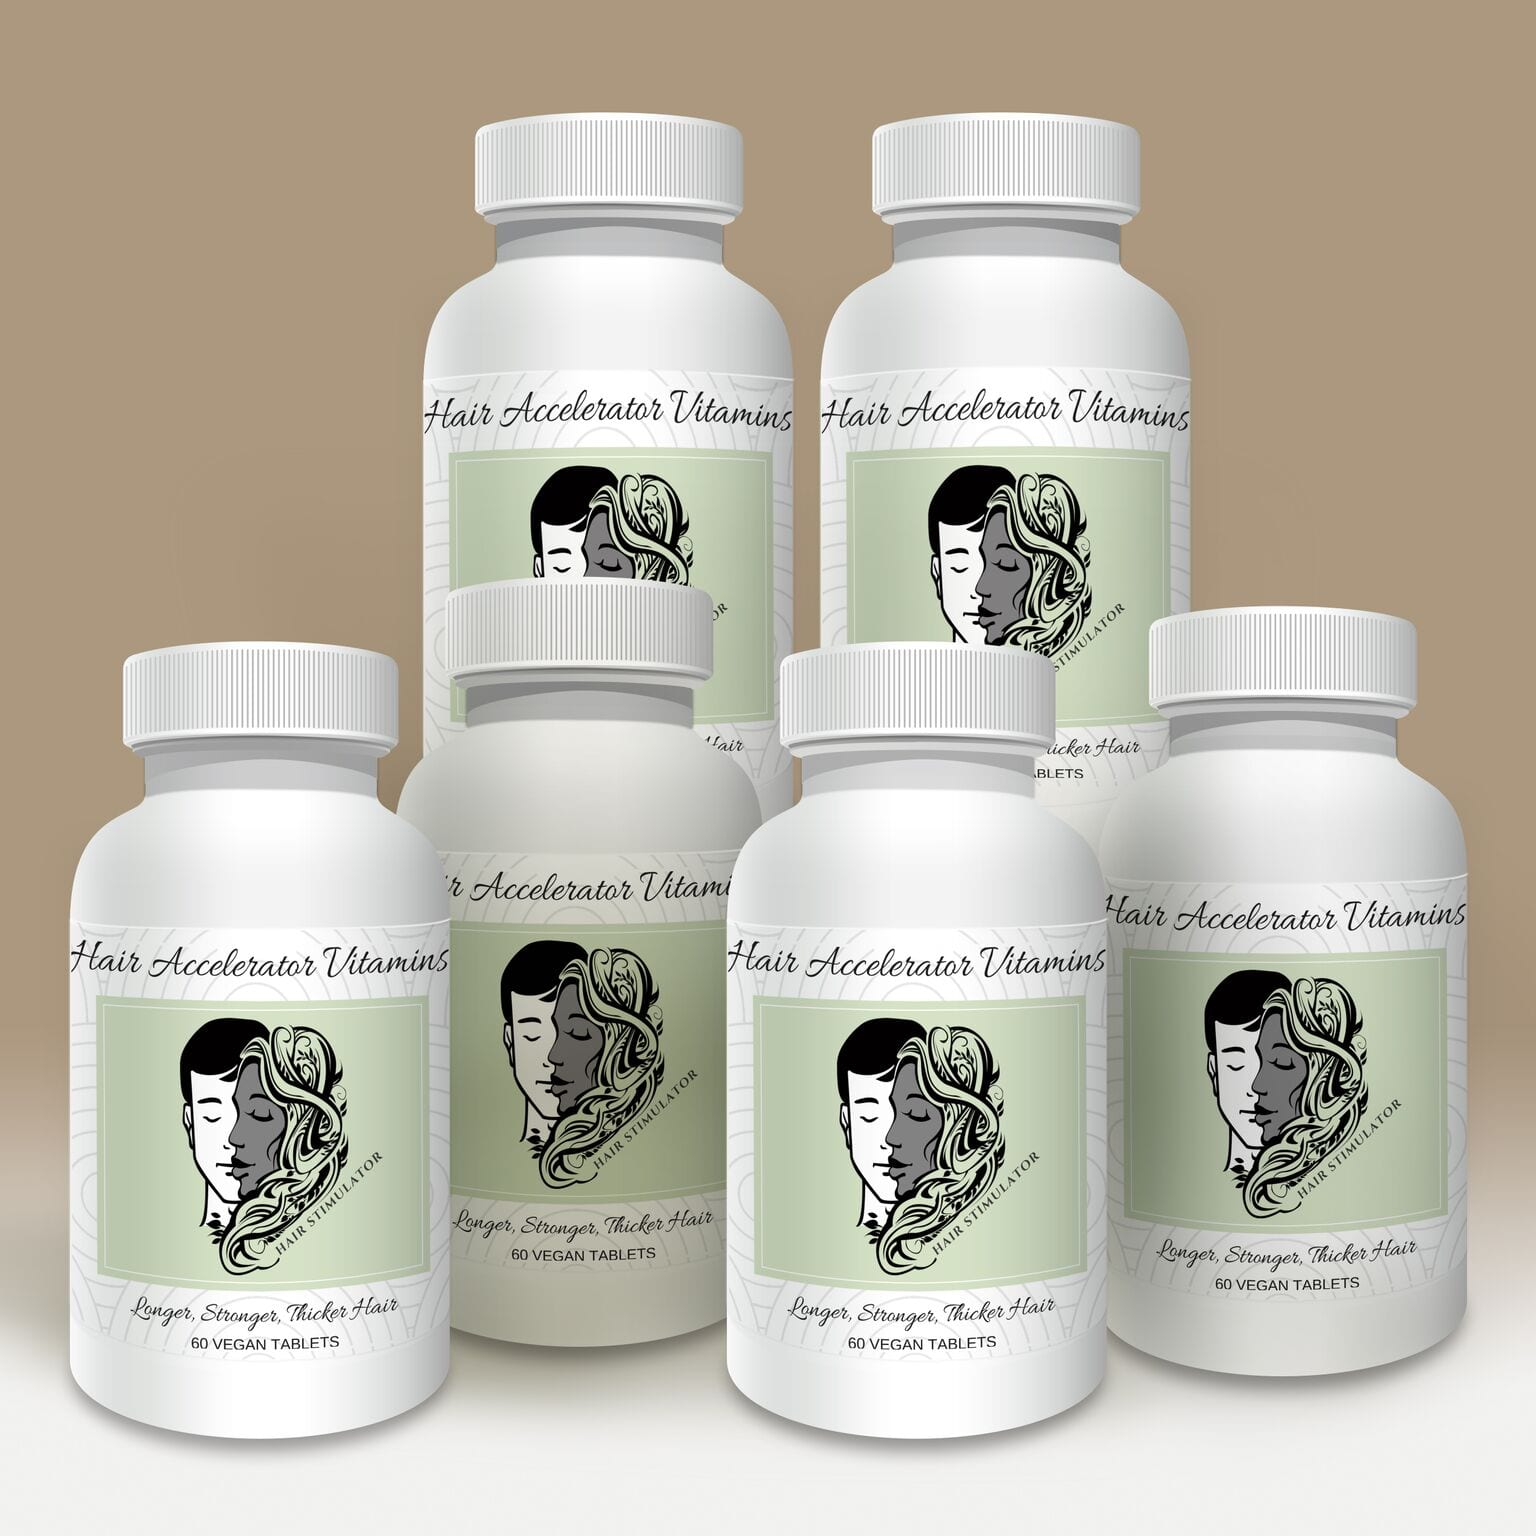 Hair Stimulator Vitamins 6 Month Supply